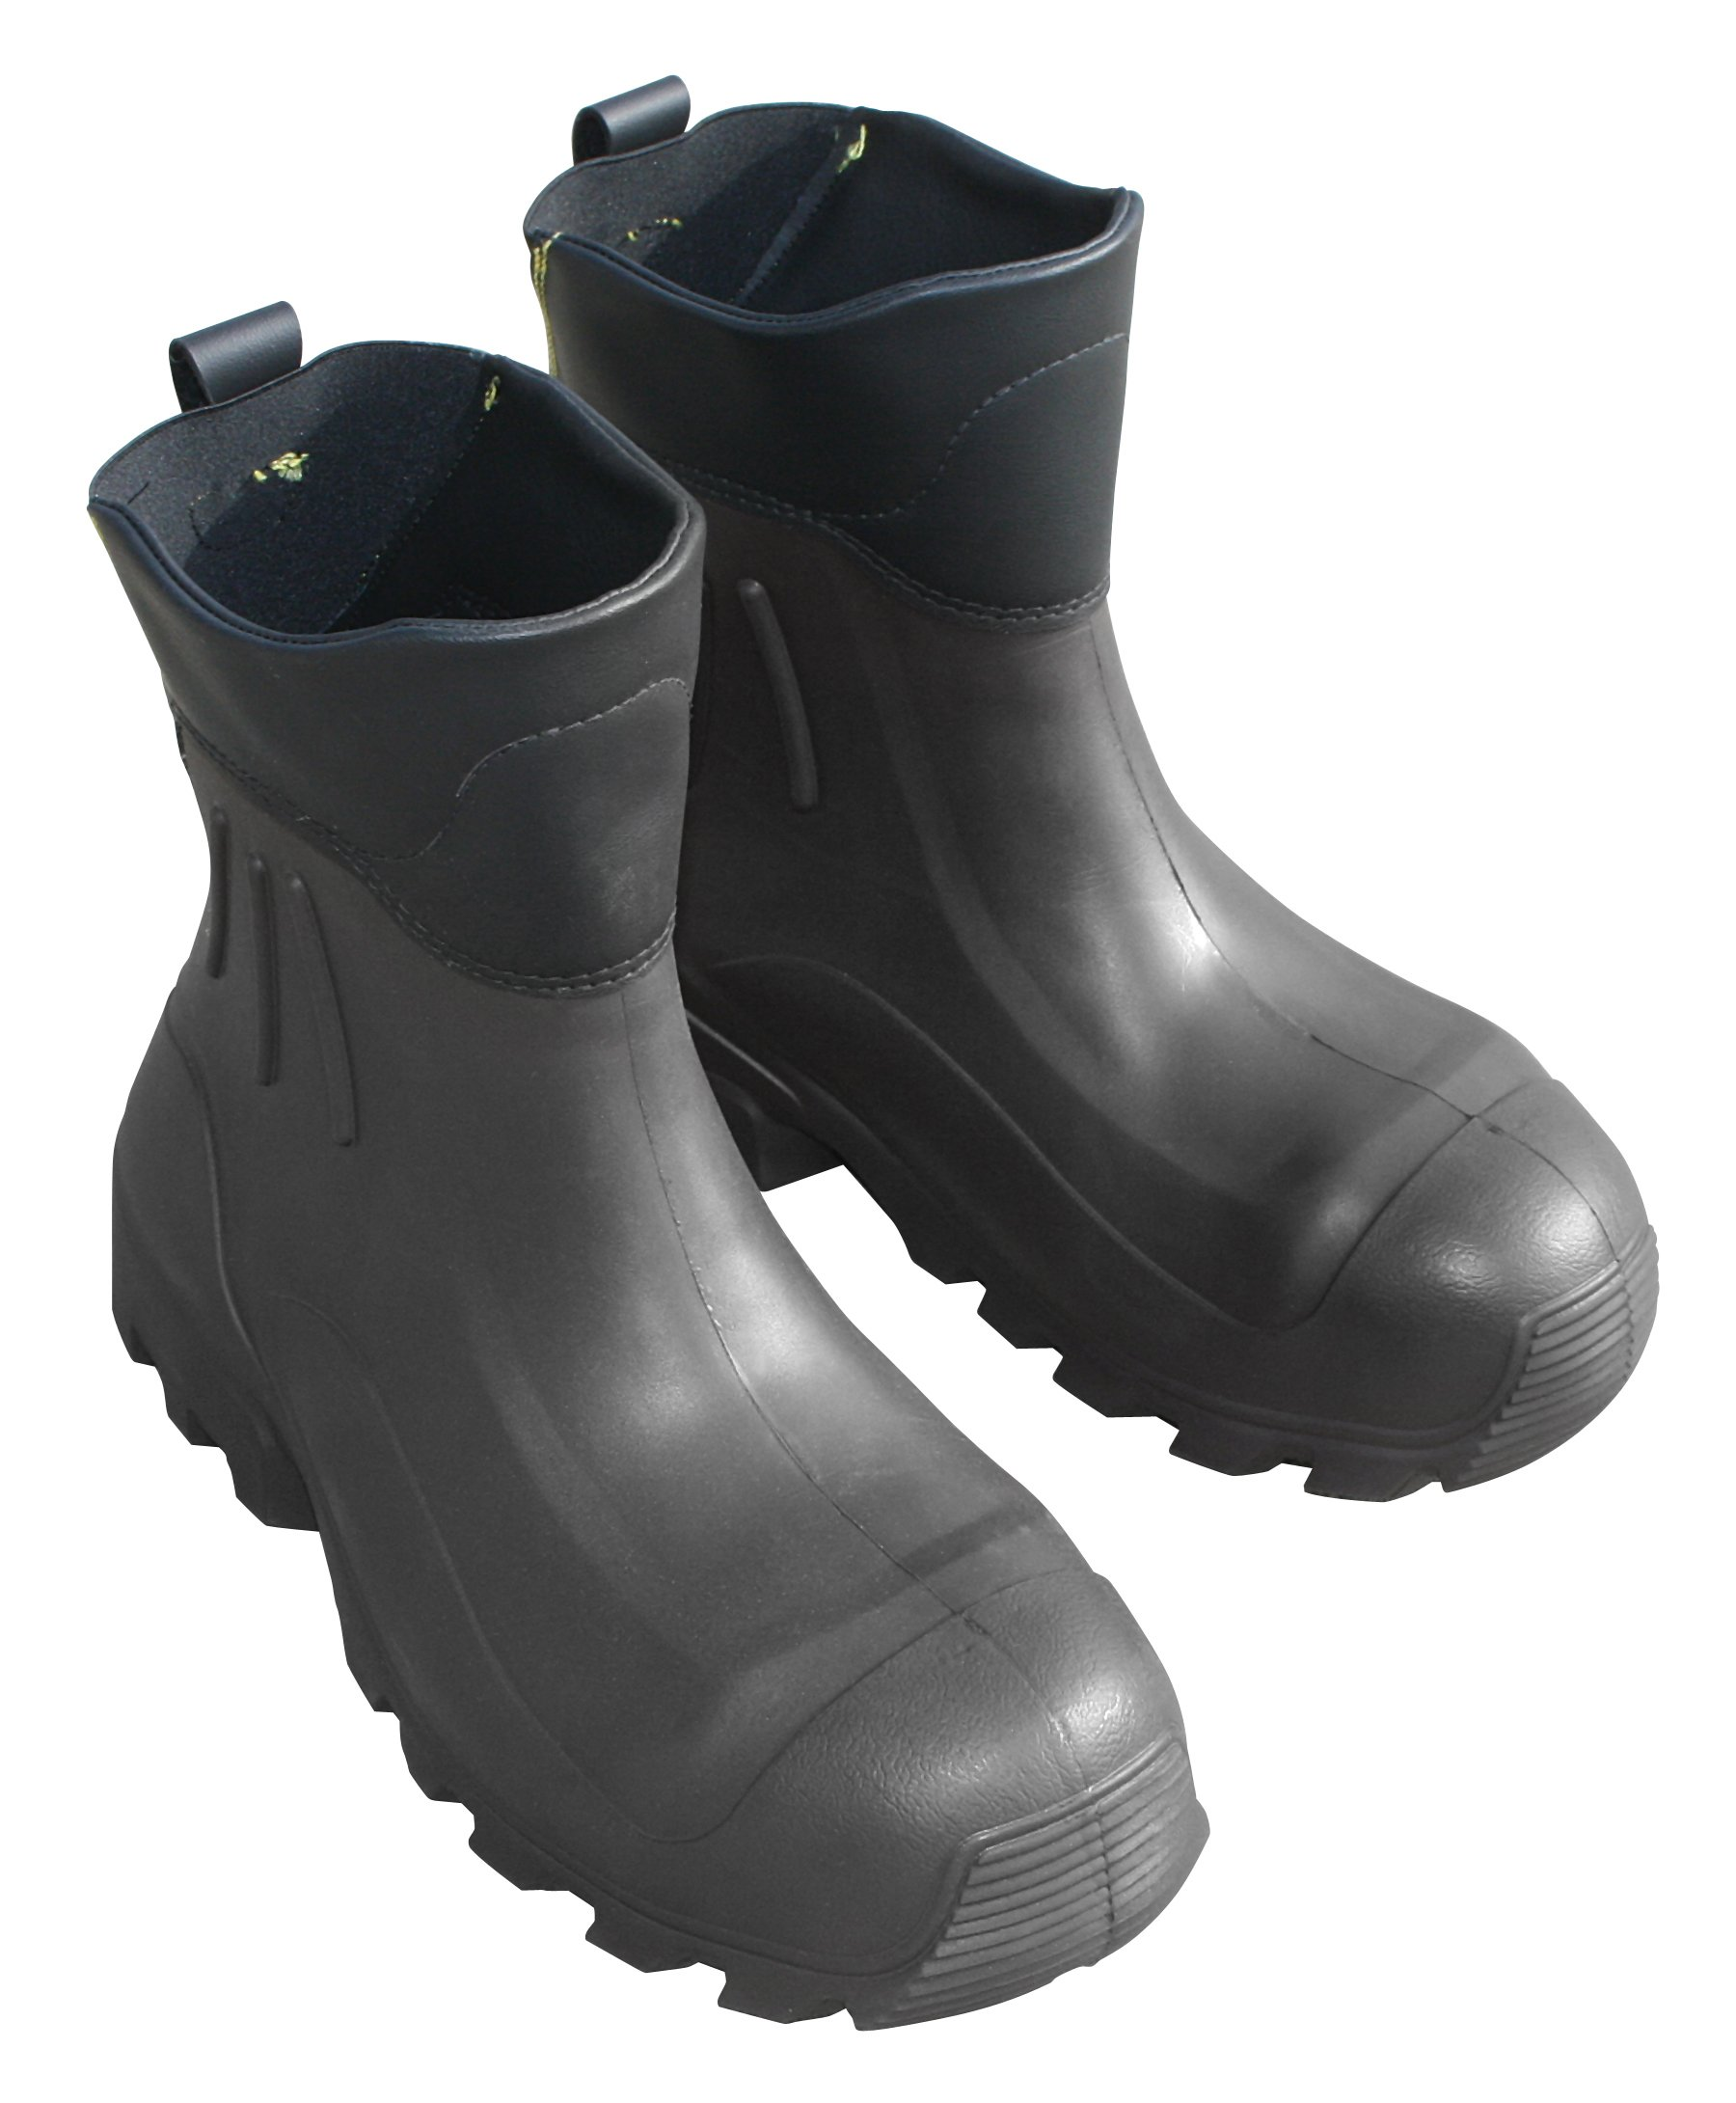 Billy Boots Commander 9'' Eva Safety Toe Boot - Composite Toe - Black - Size 11